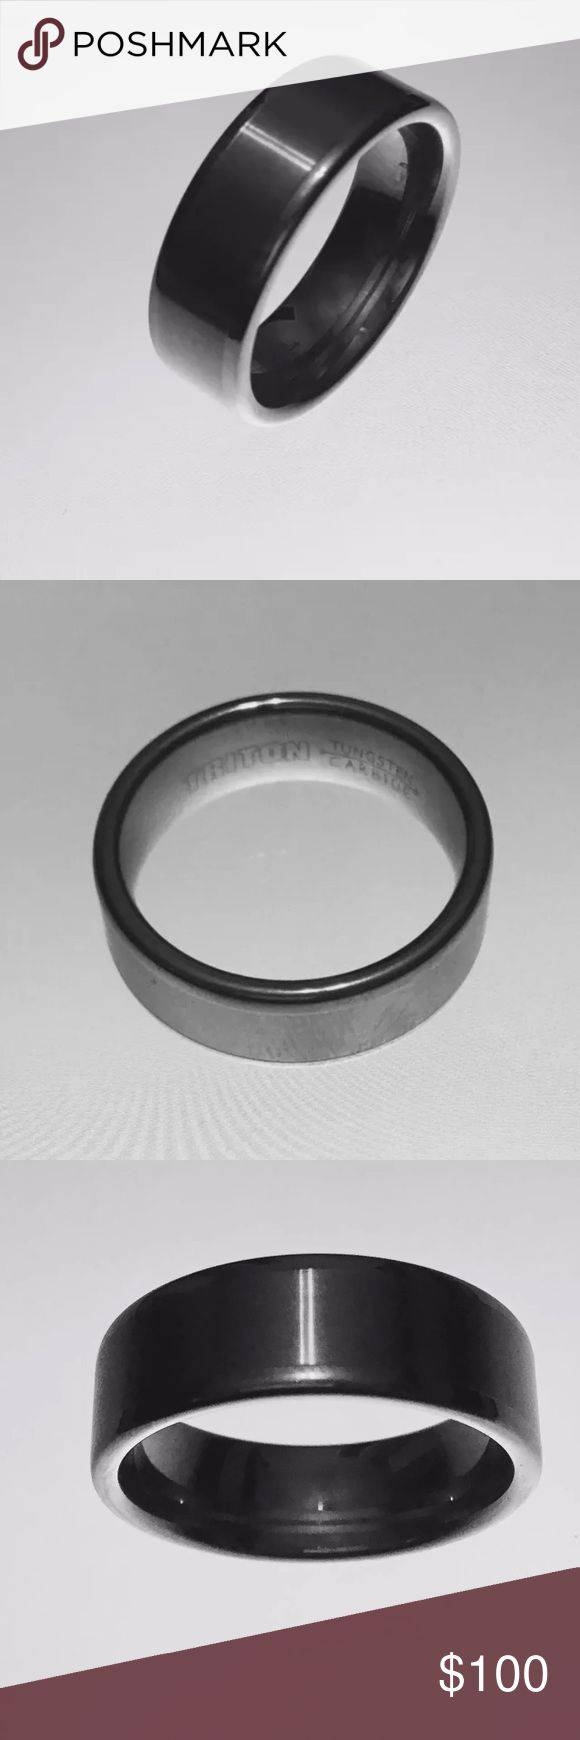 Best 10+ Tungsten Carbide Ideas On Pinterest | Tungsten Carbide In Tungsten Carbide Wedding Bands Pros And Cons (View 2 of 15)